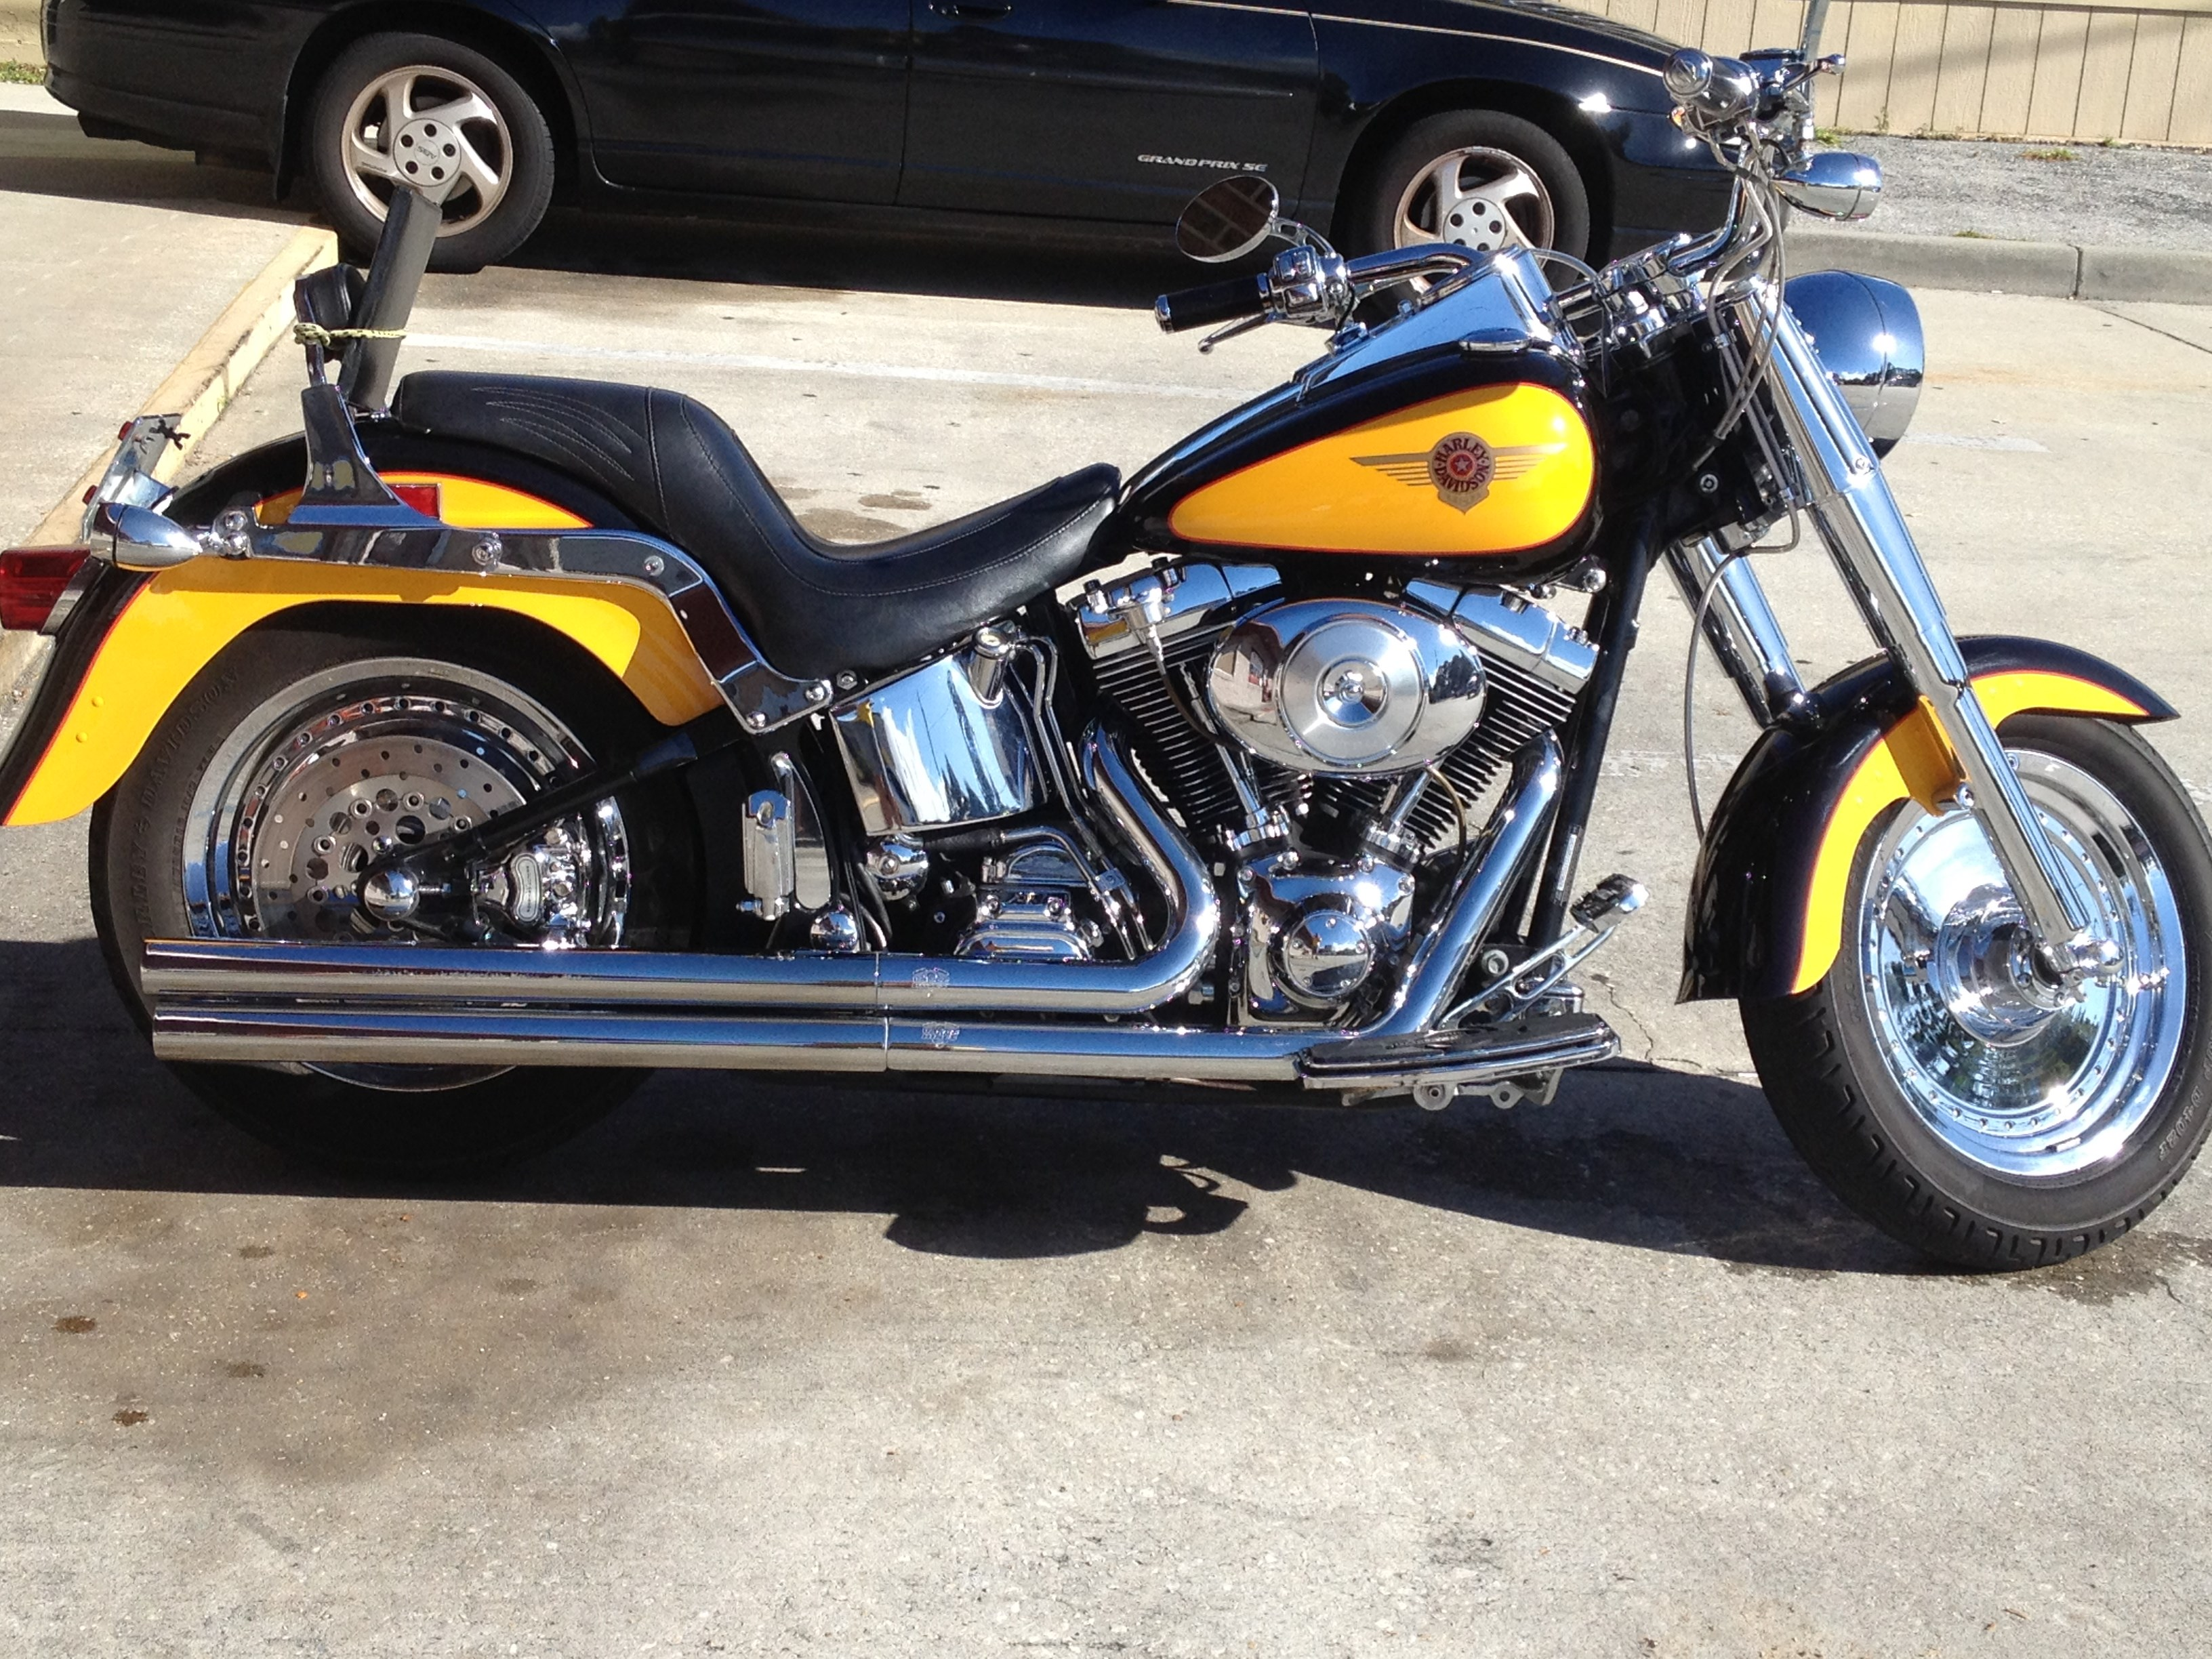 2000 harley davidson flstf softail fat boy yellow and black titusville florida 670594. Black Bedroom Furniture Sets. Home Design Ideas